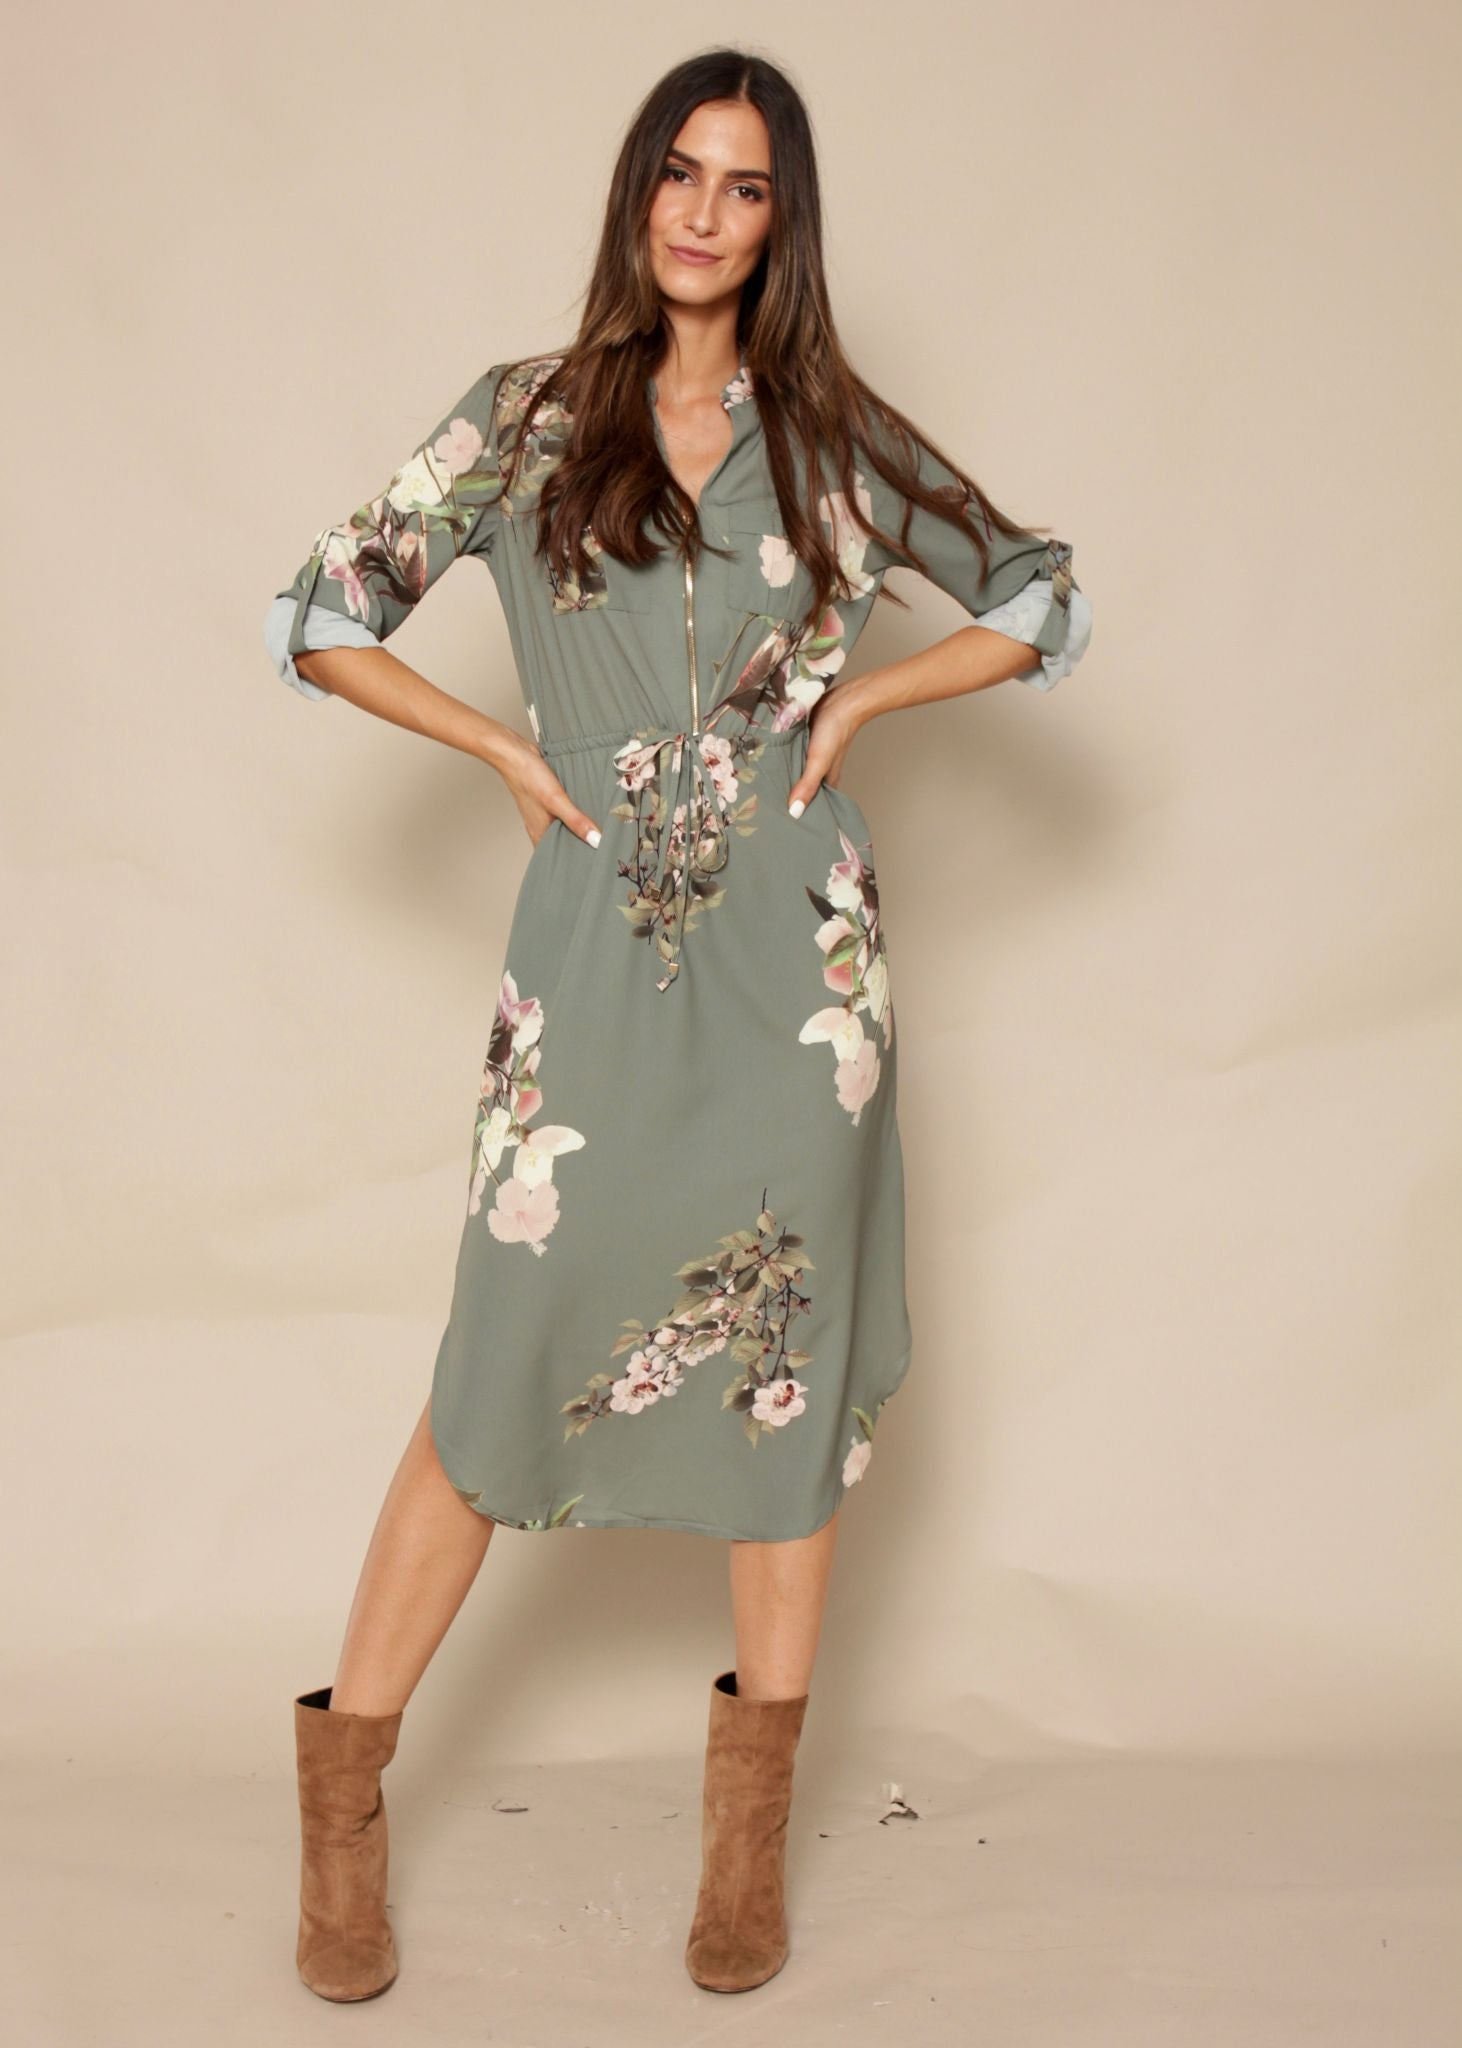 Low Lights Tunic Dress - Khaki Garden